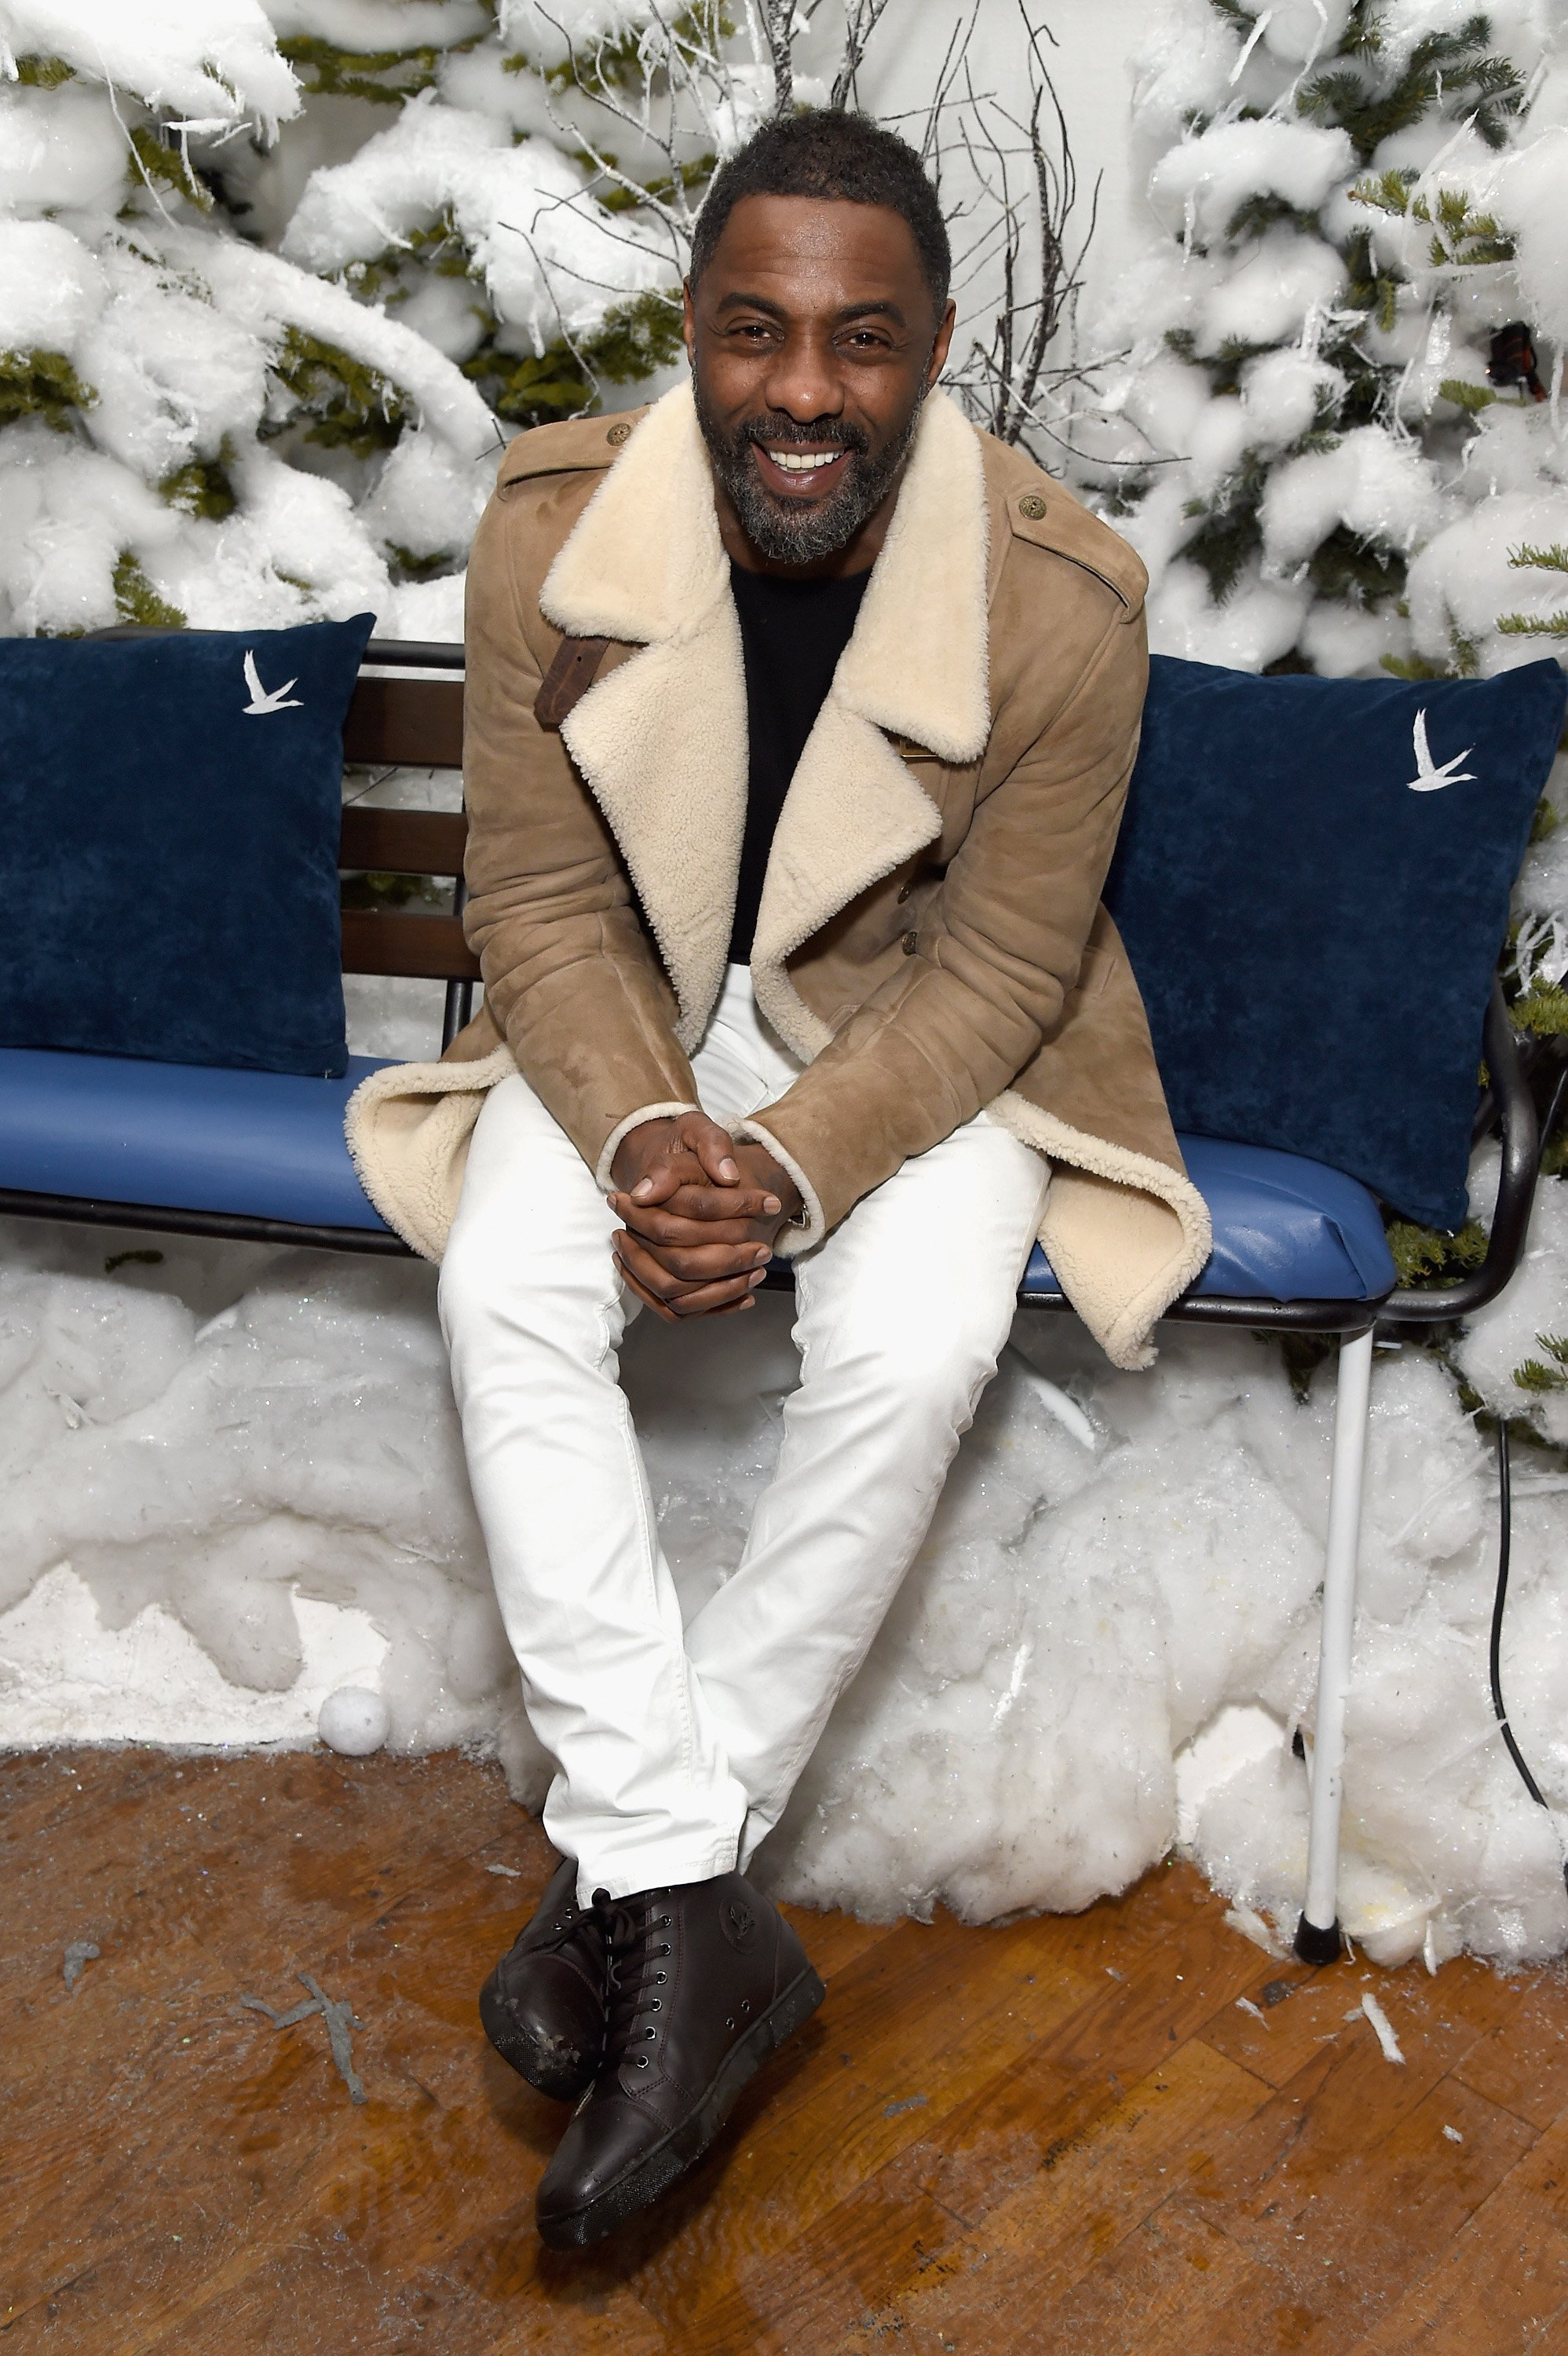 """Idris Elba attends an After Party for """"Yardie"""" in Park City, Utah on January 20, 2018 